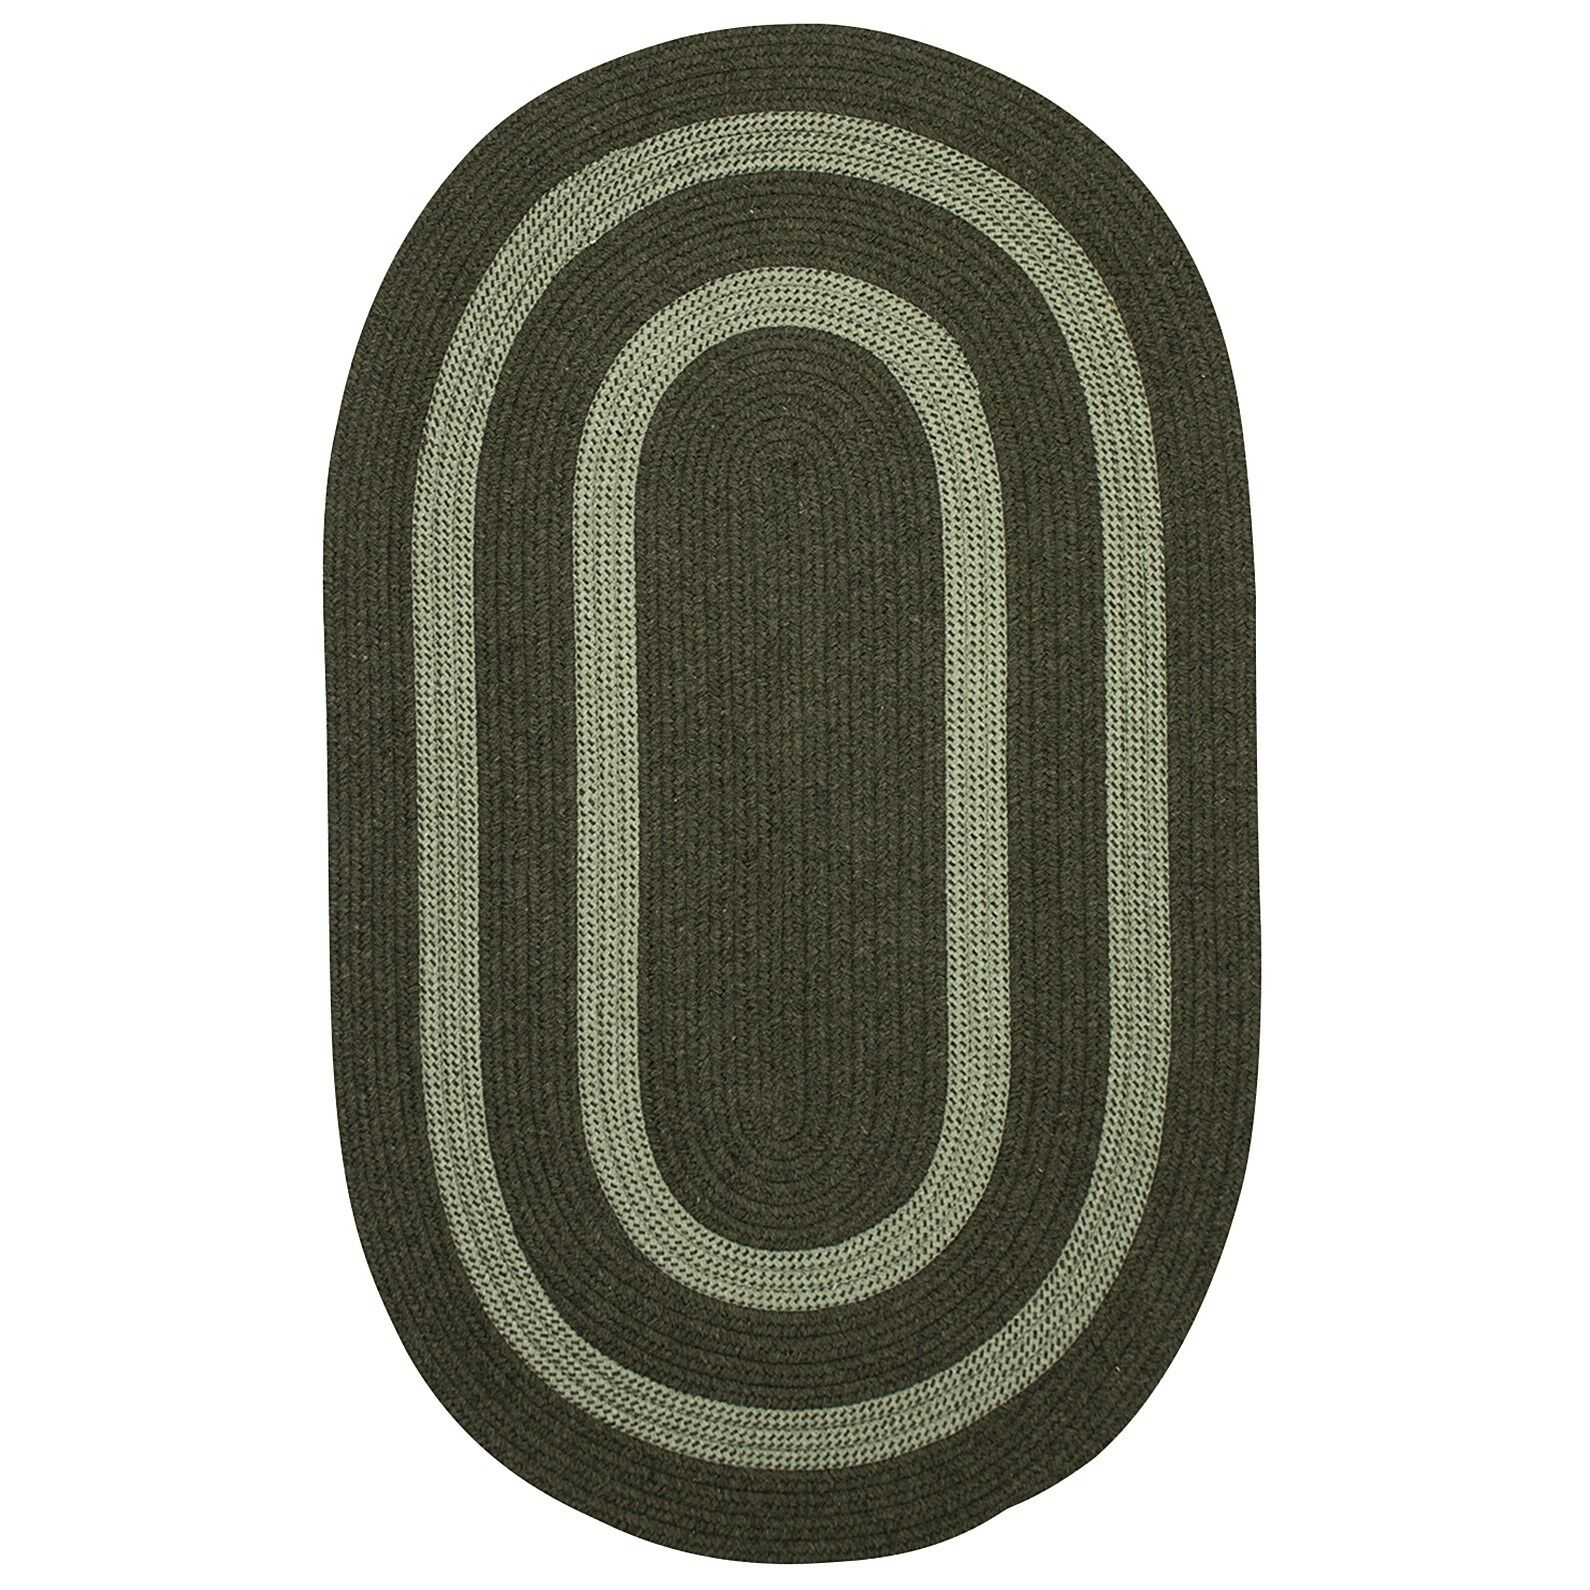 Westfield Hand-Woven Green Area Rug Rug Size: Oval 12' x 15'